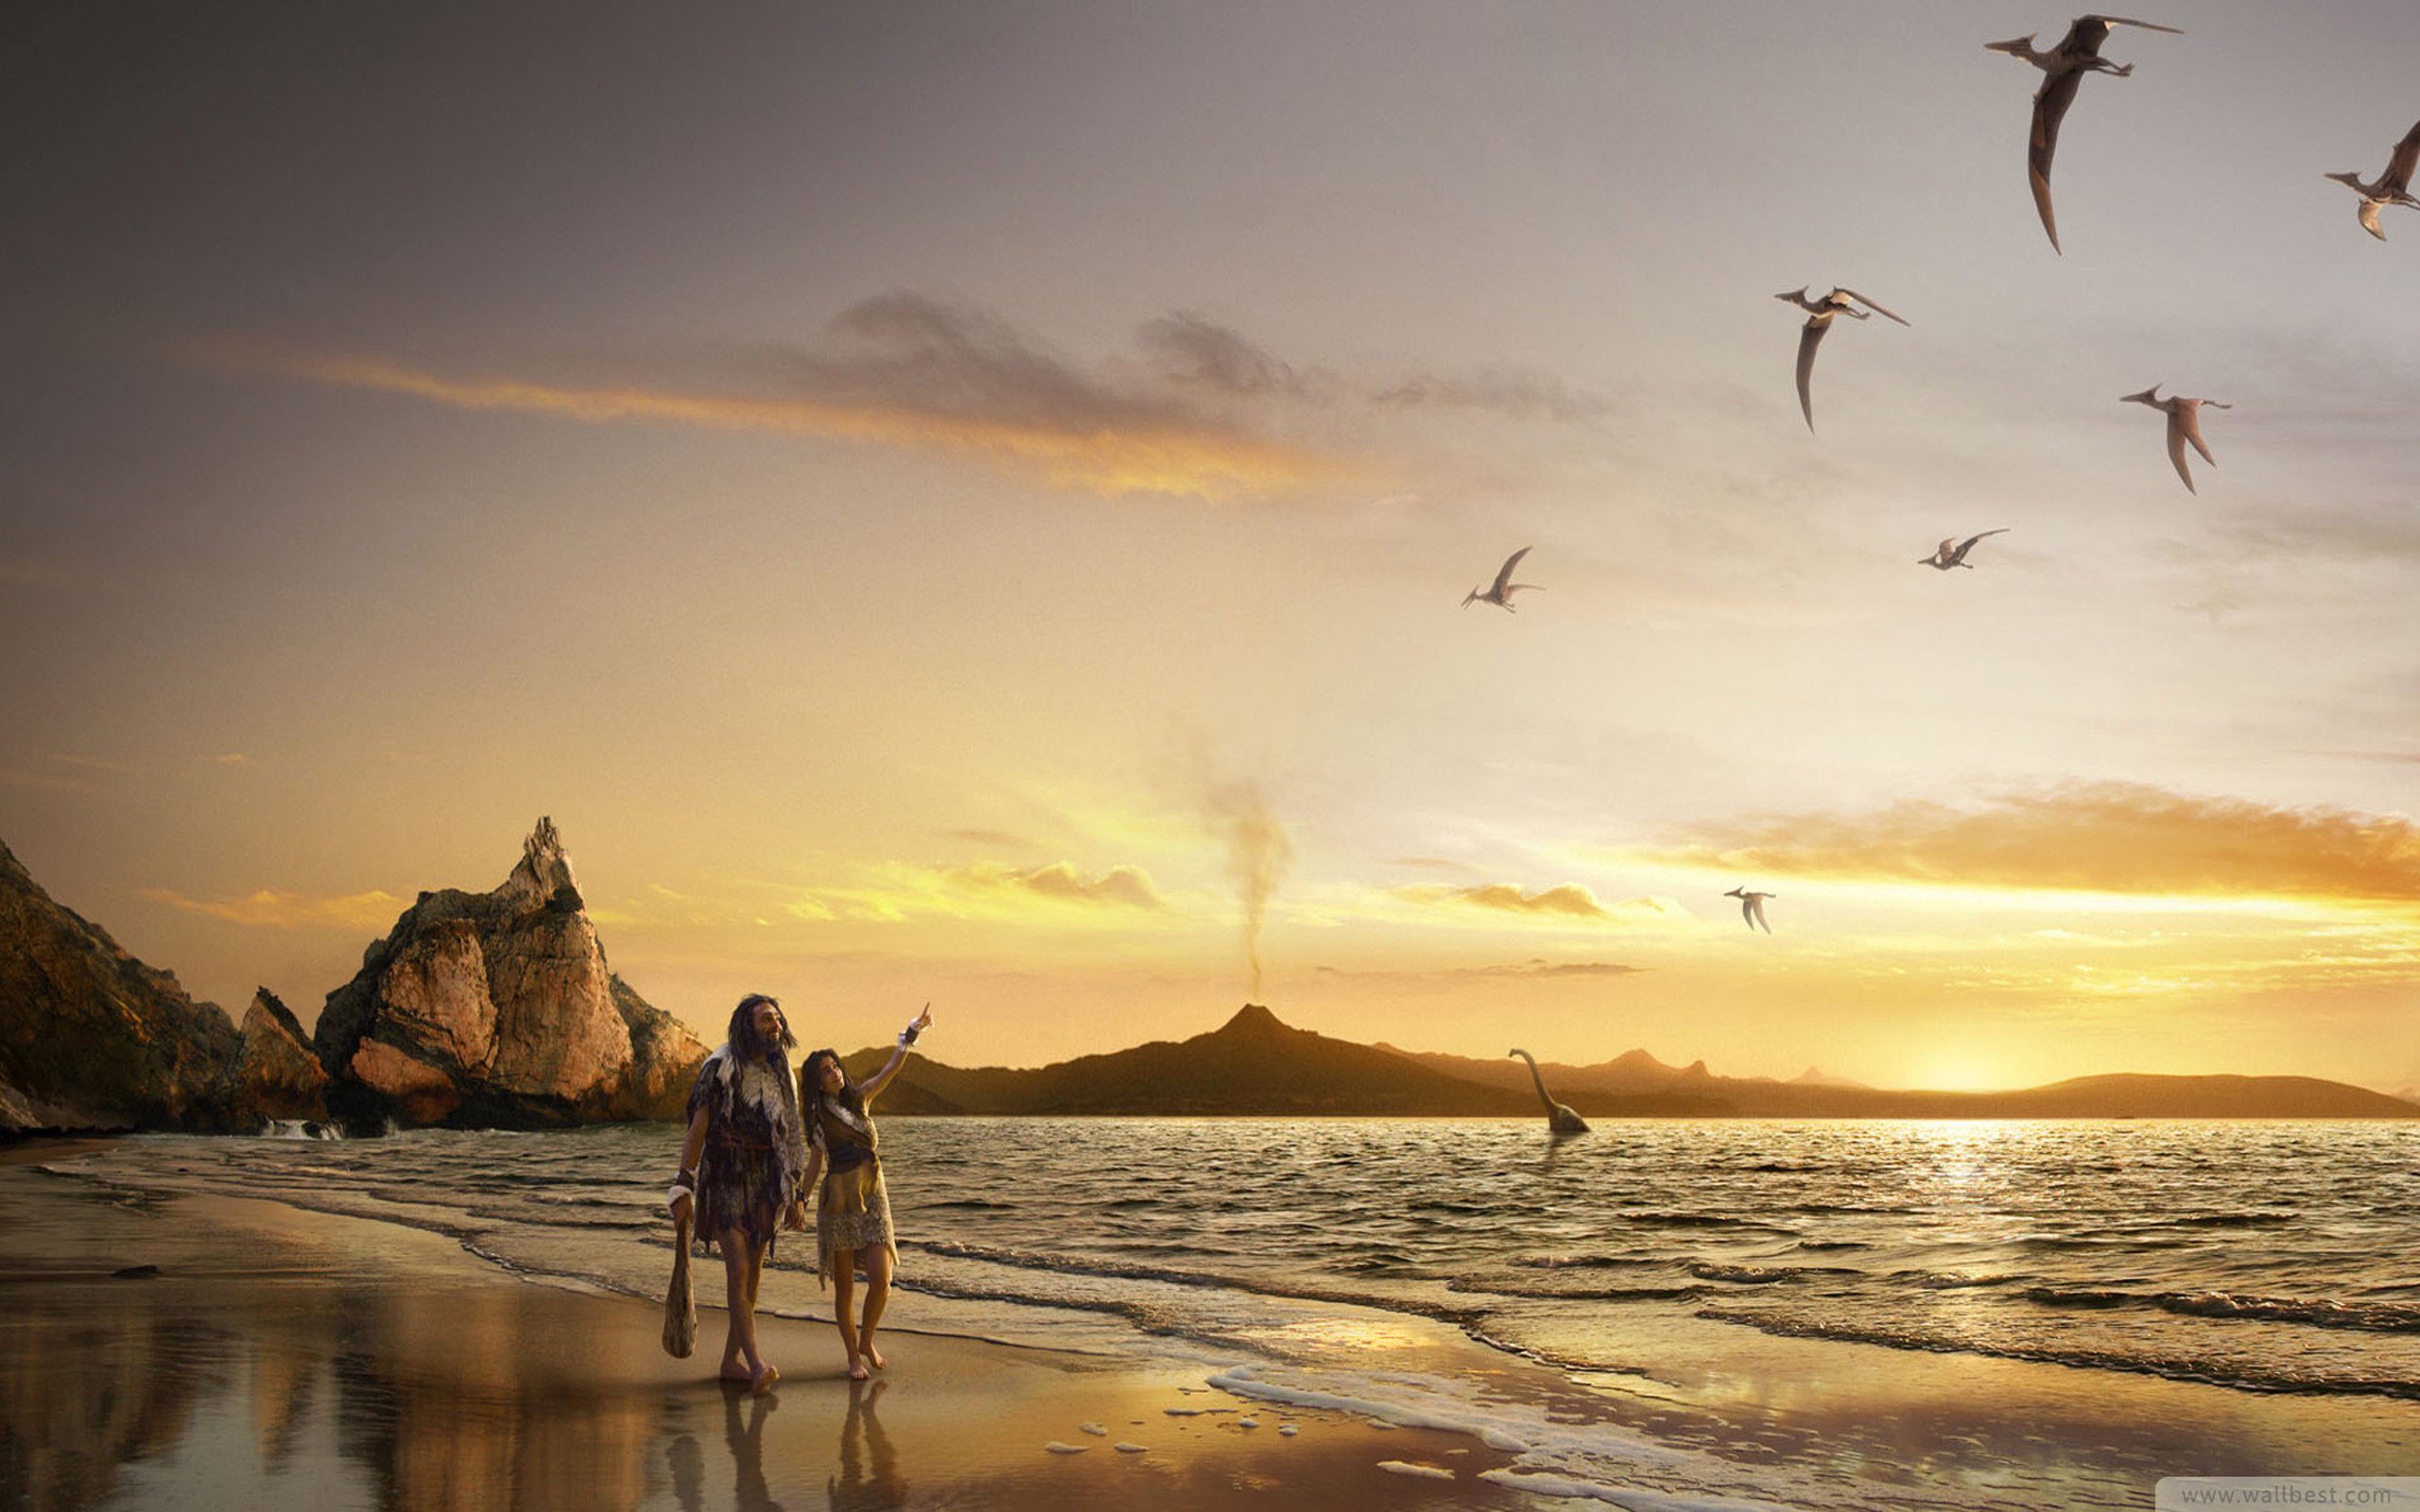 Res: 2560x1600, Love Couple Wallpaper Beach Pictures Ideas Of Romantic